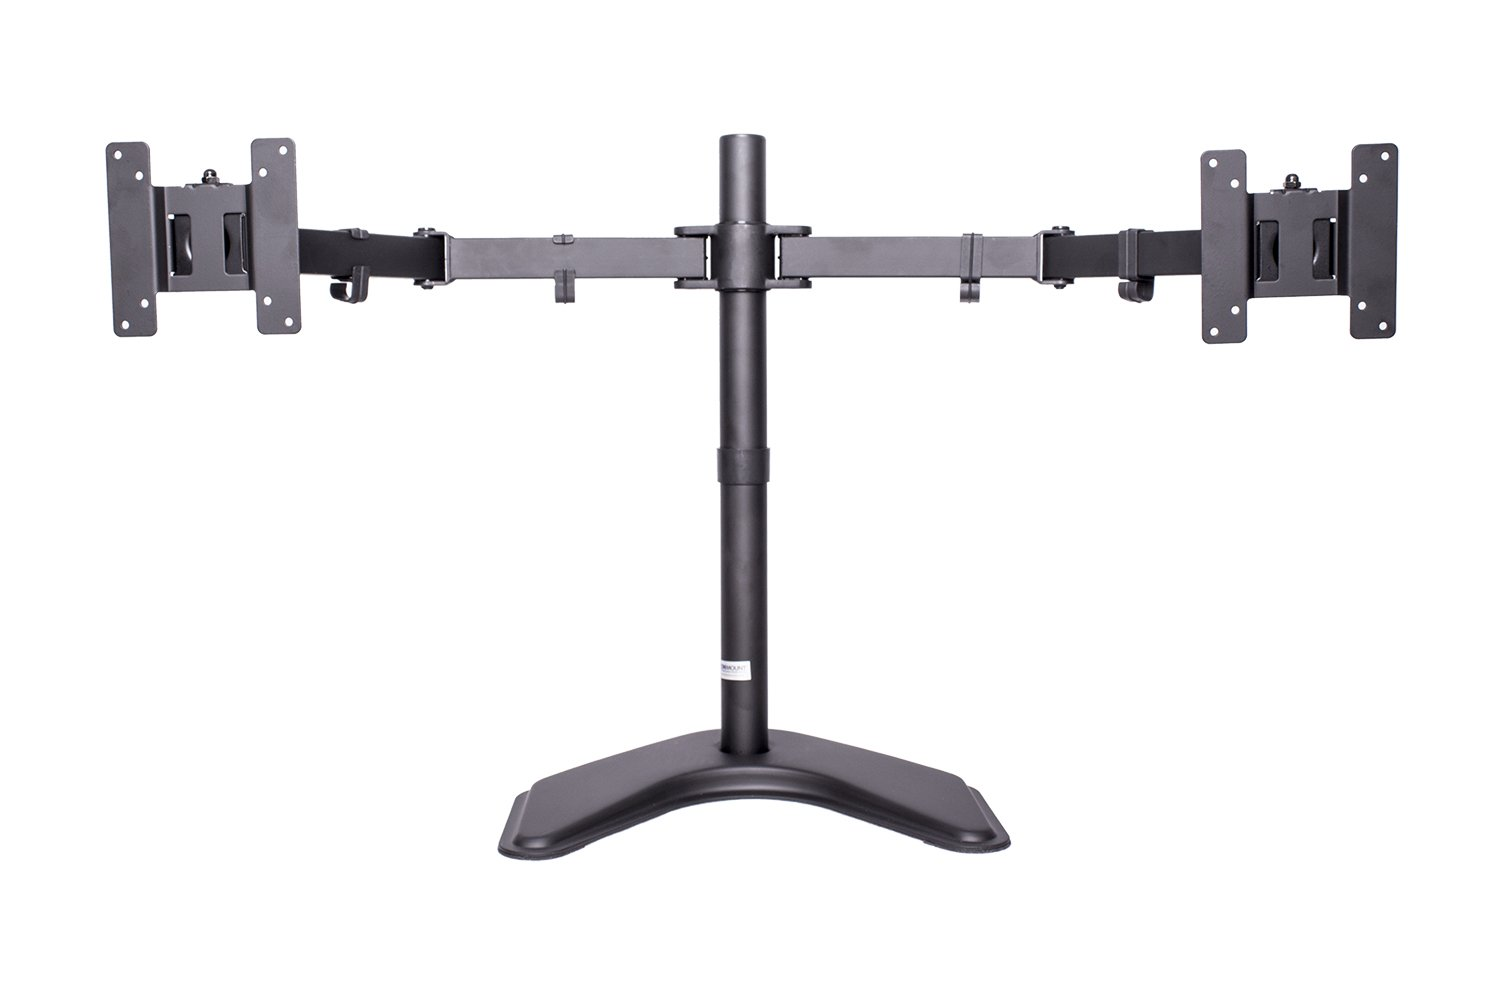 MonMount Dual LCD Free Standing Monitor Mount for Up to 24'' Displays (LCD-6460B-ECO), Black